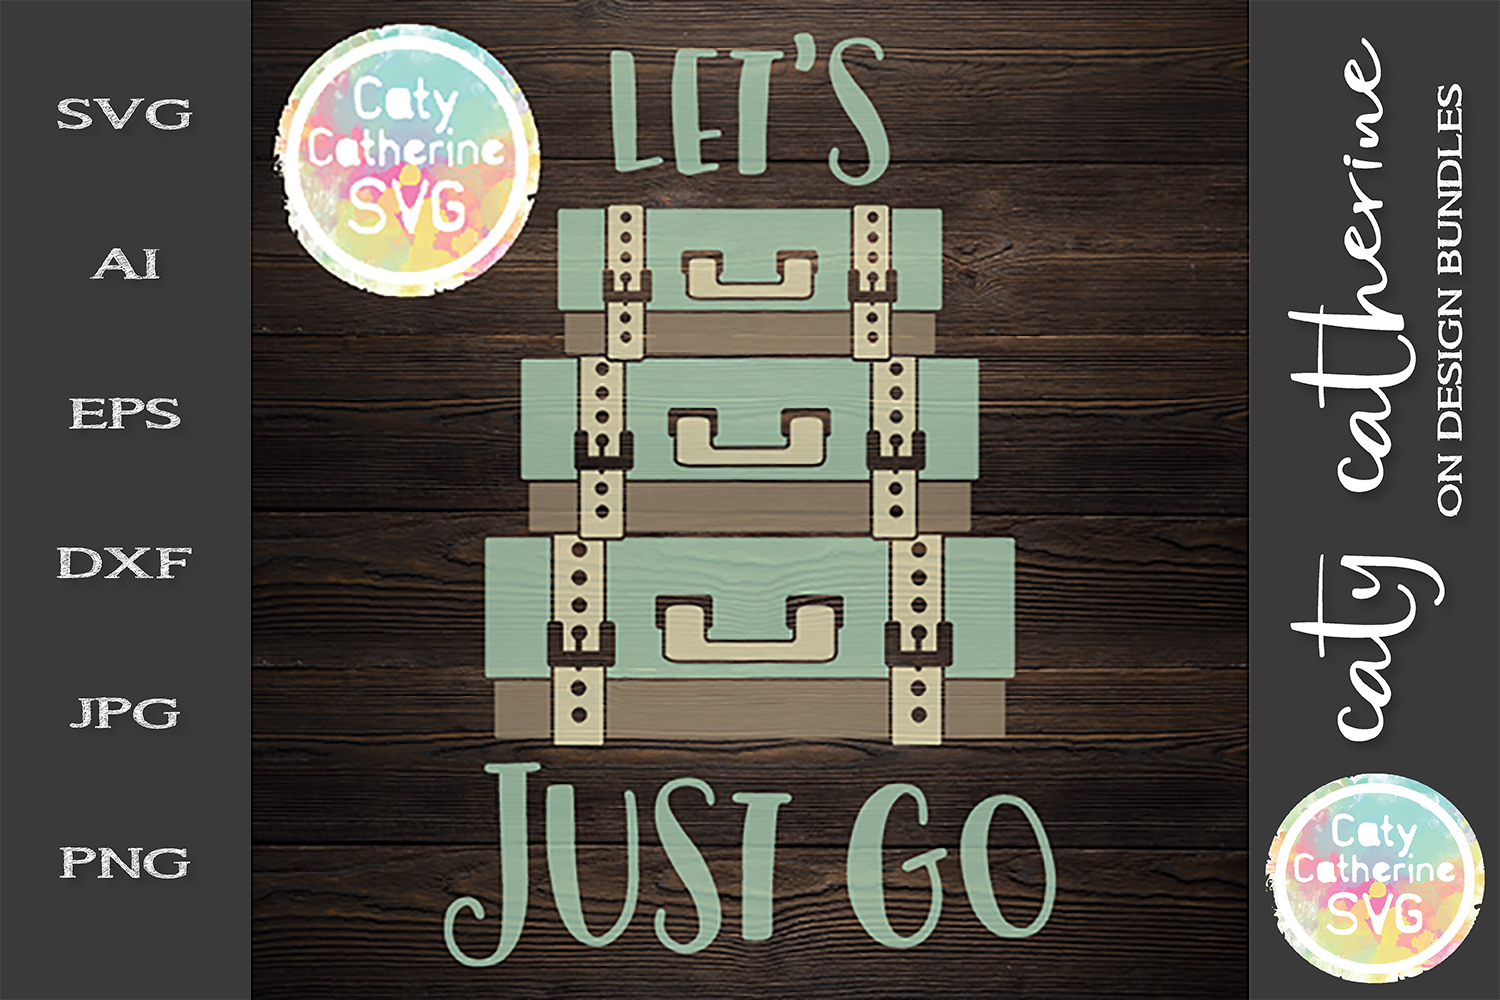 Let's Just Go Suitcases Travel Adventure SVG Cut File example image 1